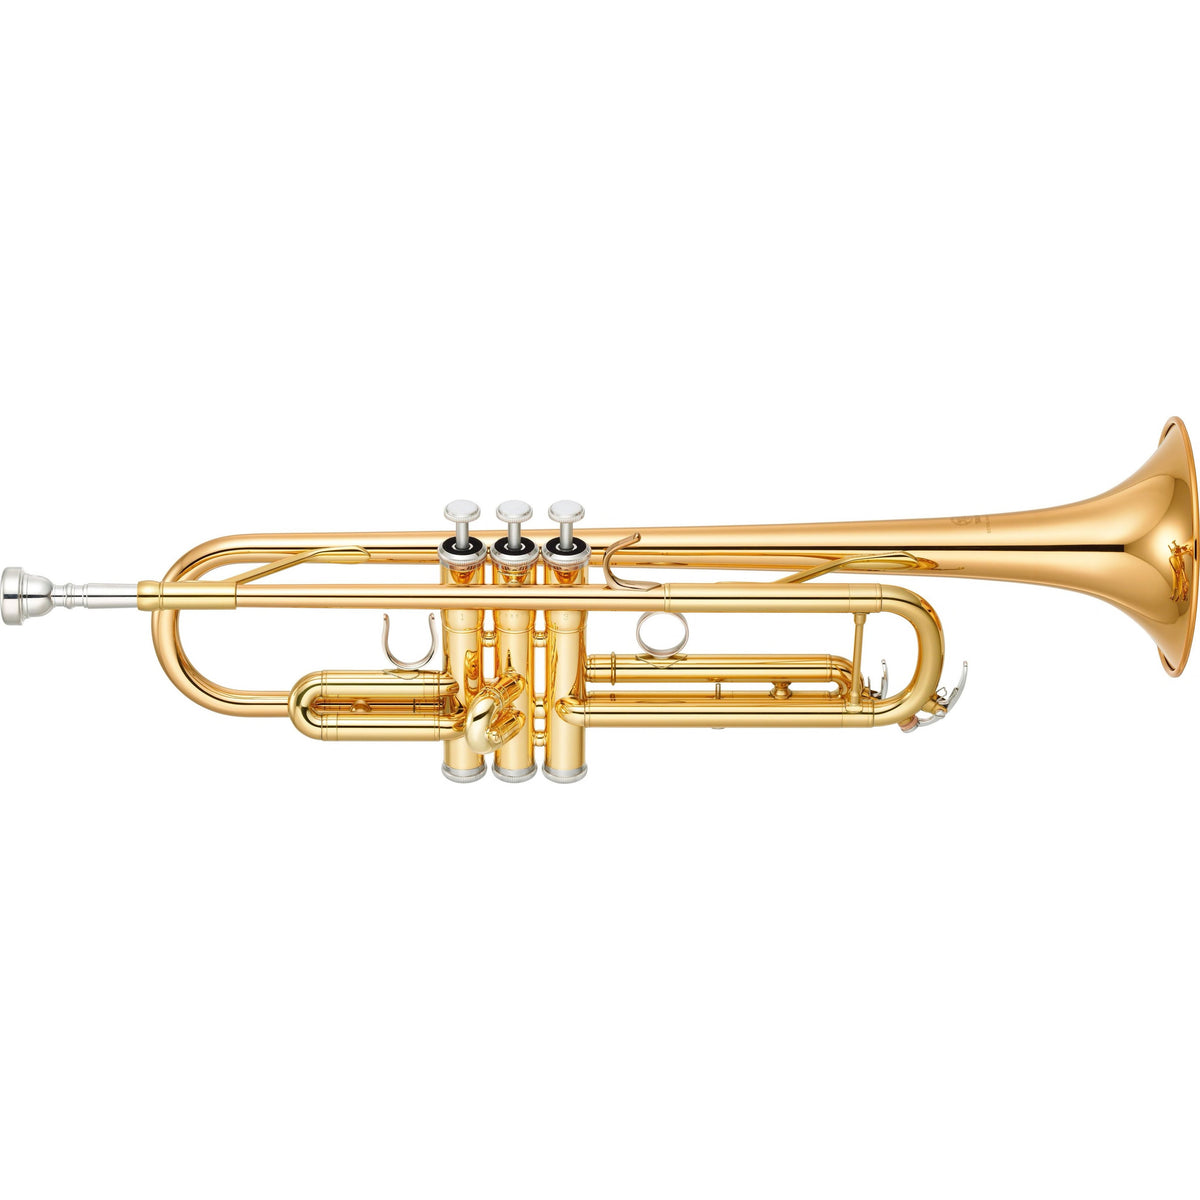 Yamaha - YTR-4335GII - Intermediate Bb Trumpet-Trumpet-Yamaha-Music Elements